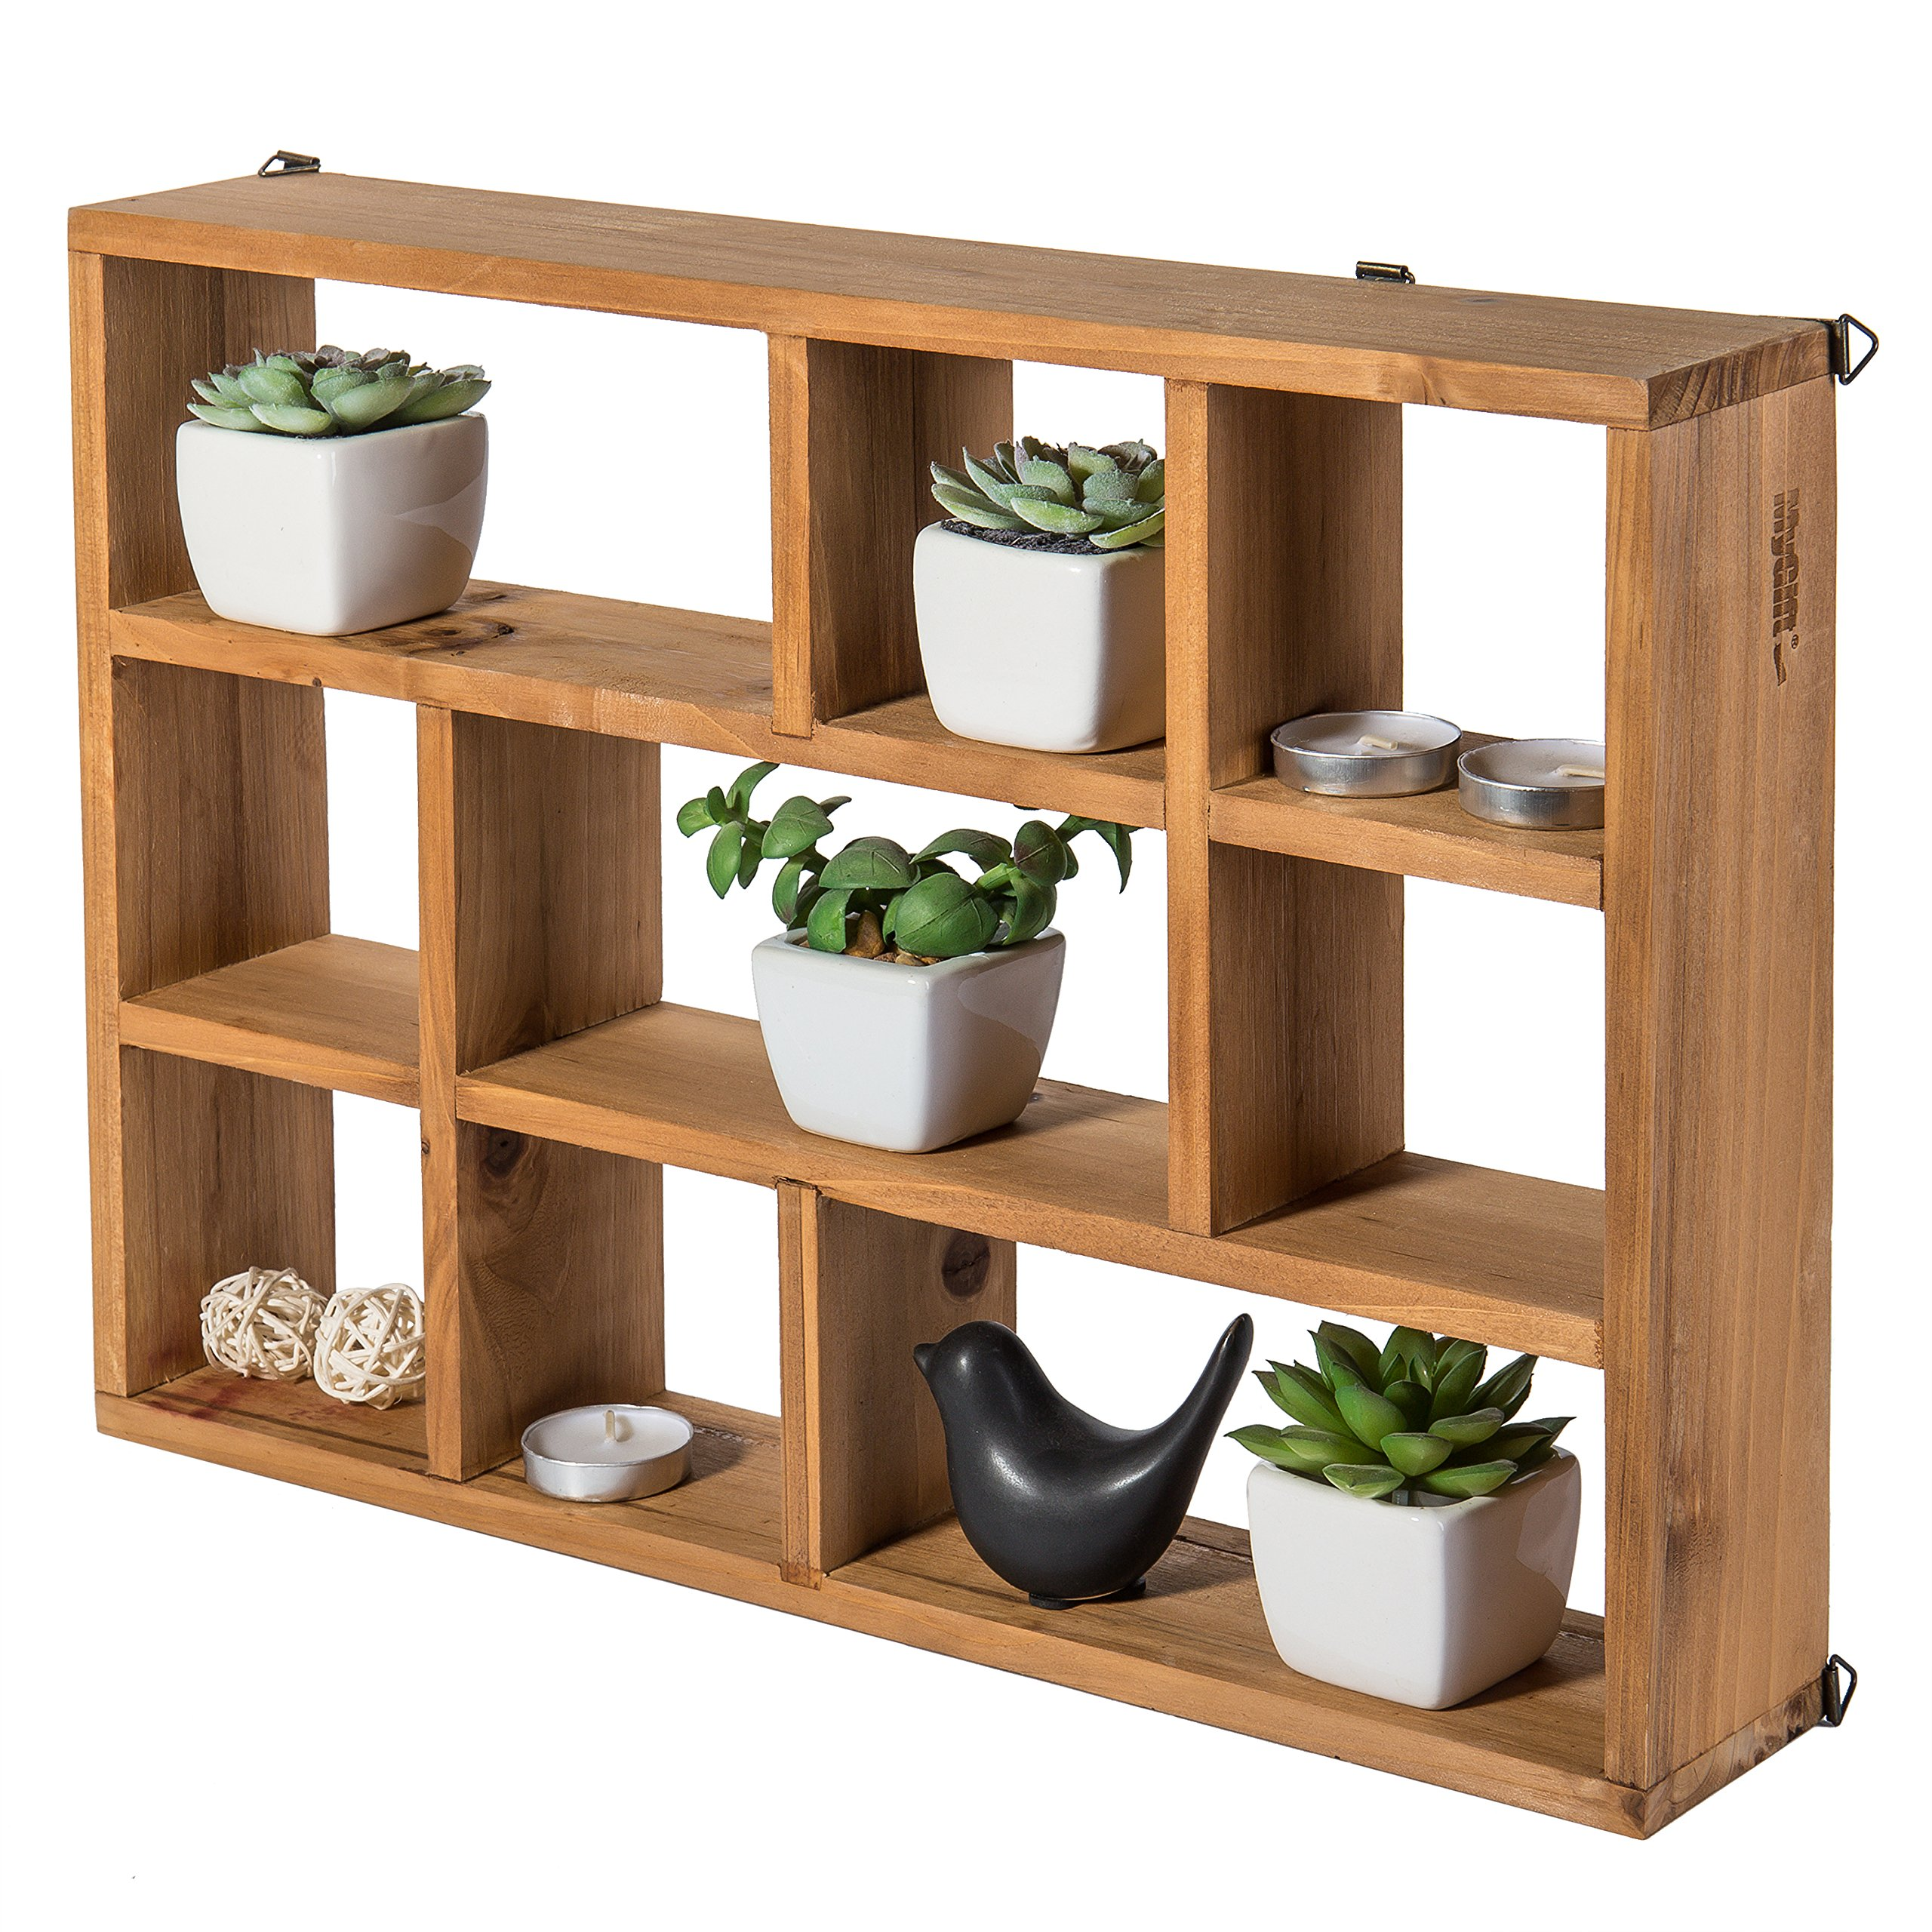 MyGift 15 Inch Wall Mount (Vertical or Horizonal) 9 Slot Rustic Wood Floating Shelves/Freestanding Shadow Box